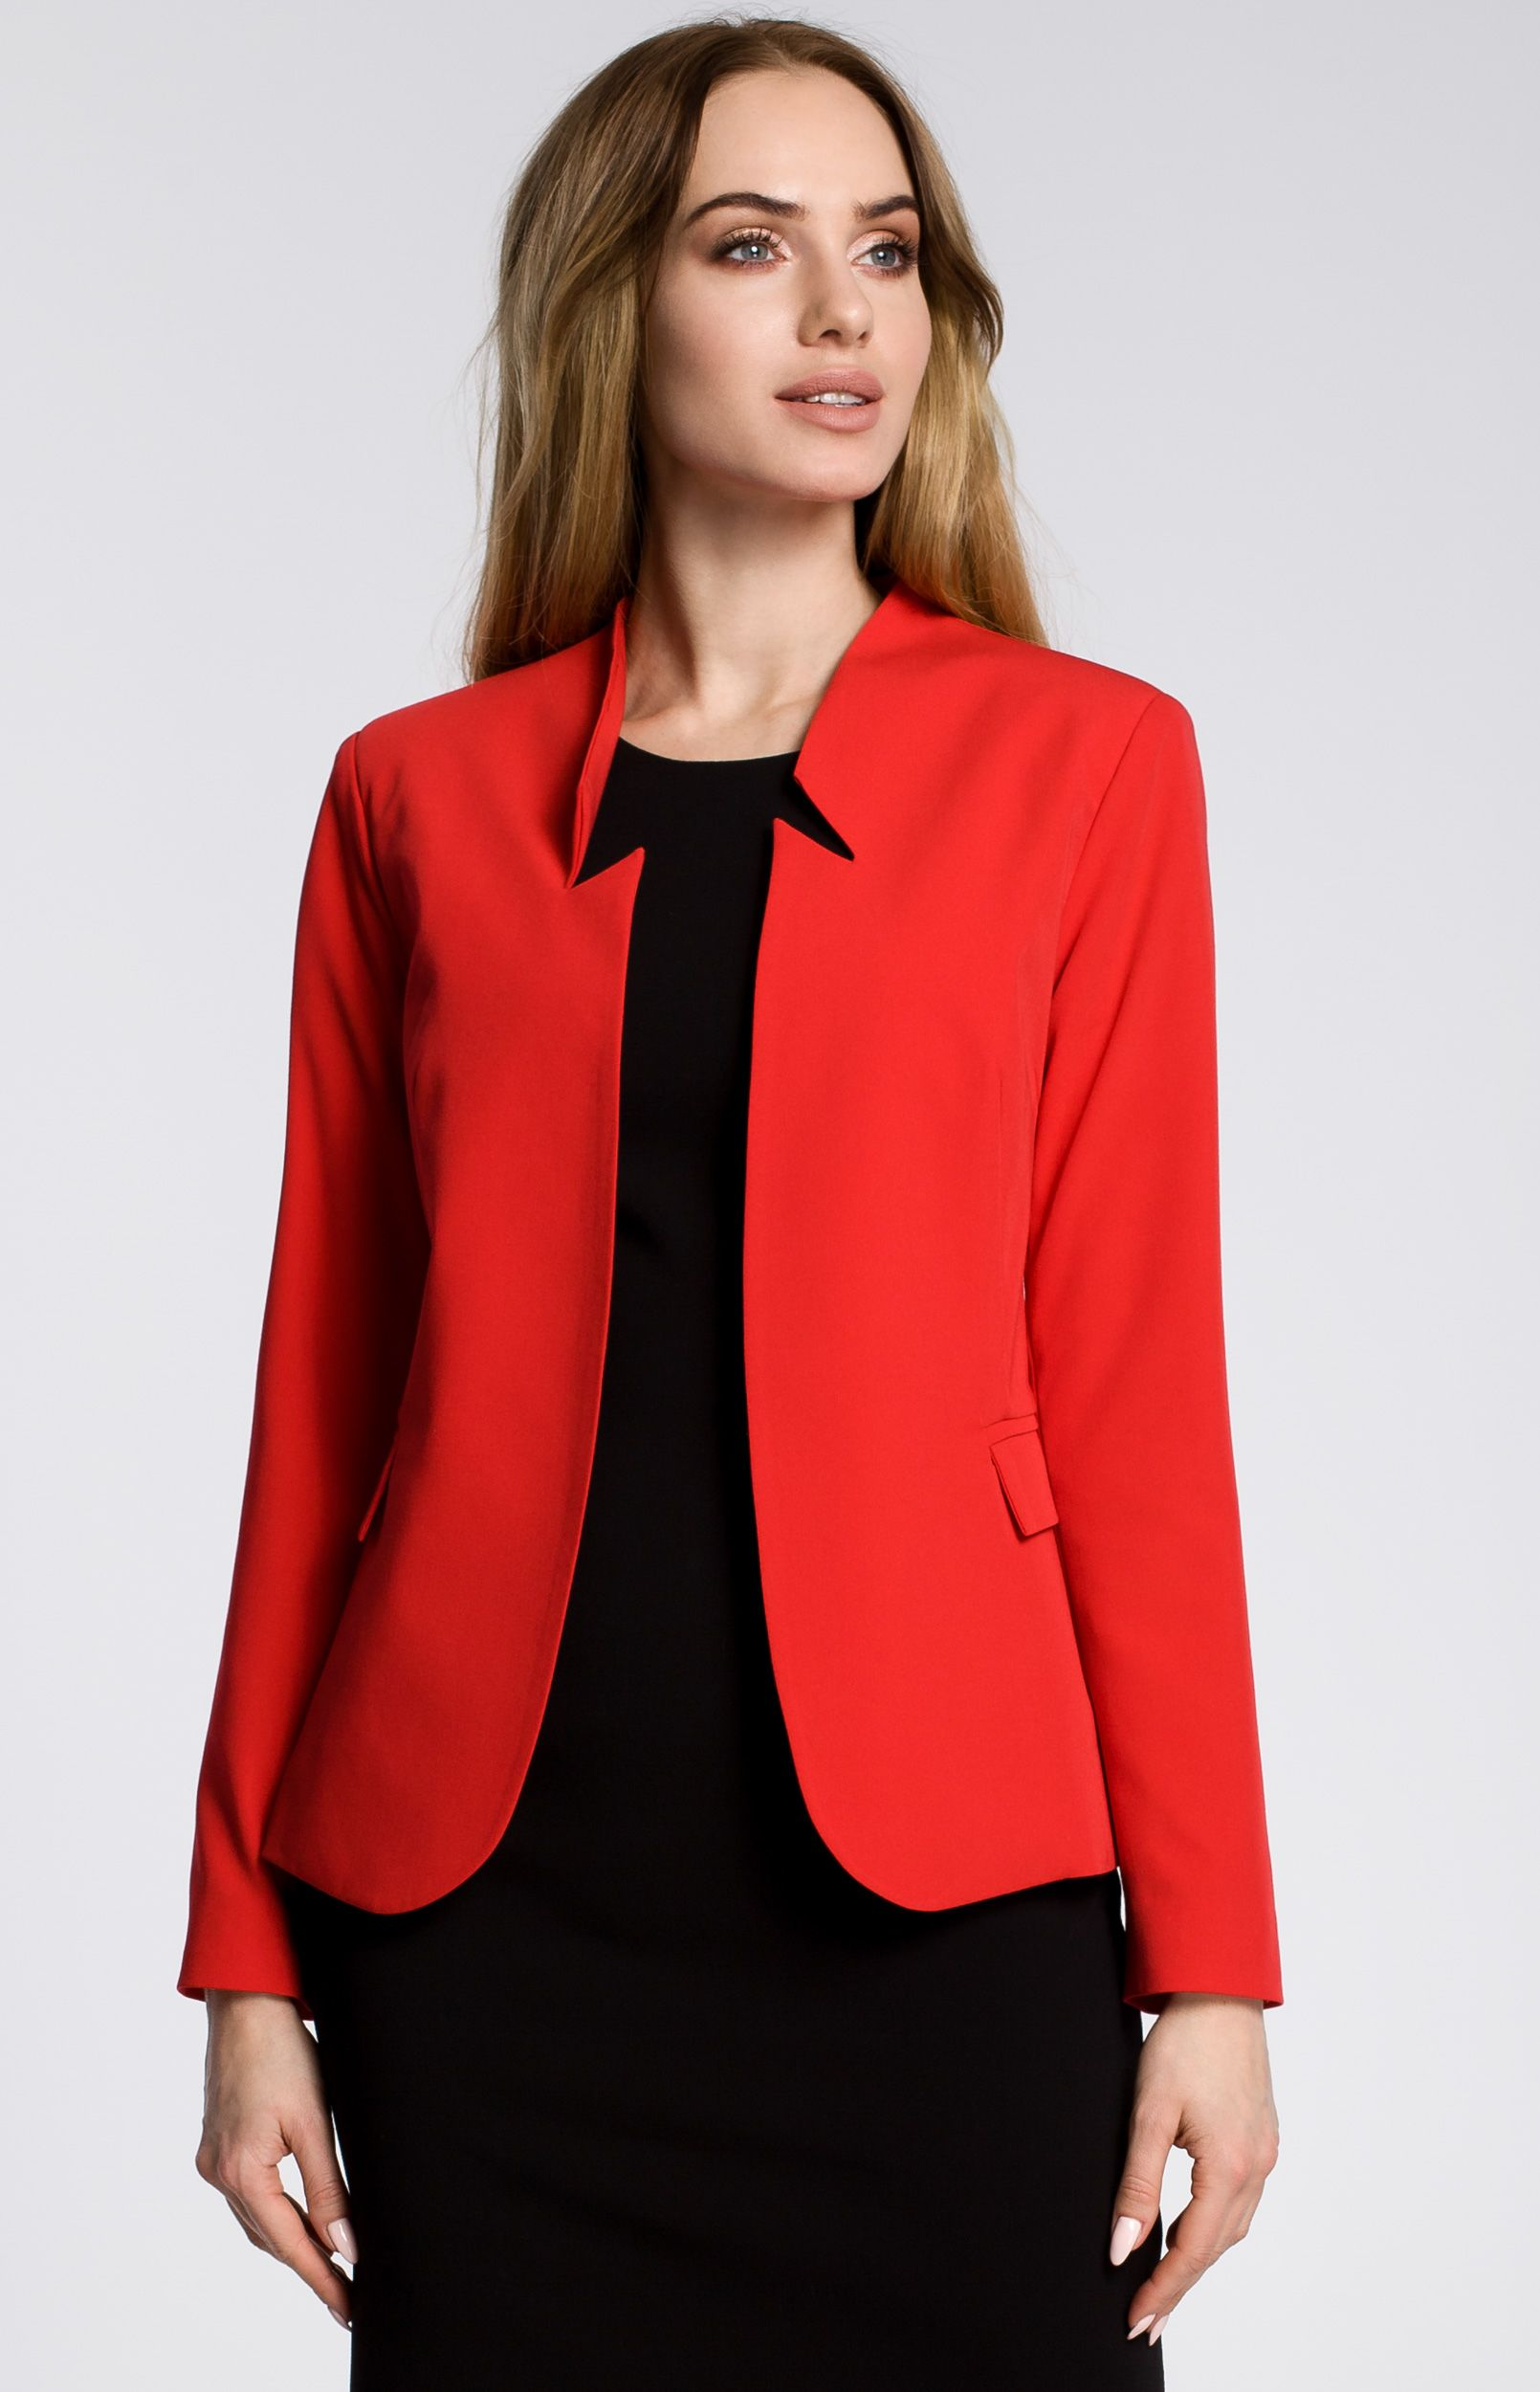 veste femme blazer rouge moe me358r idresstocode boutique de d shabill s et nuisettes robes. Black Bedroom Furniture Sets. Home Design Ideas